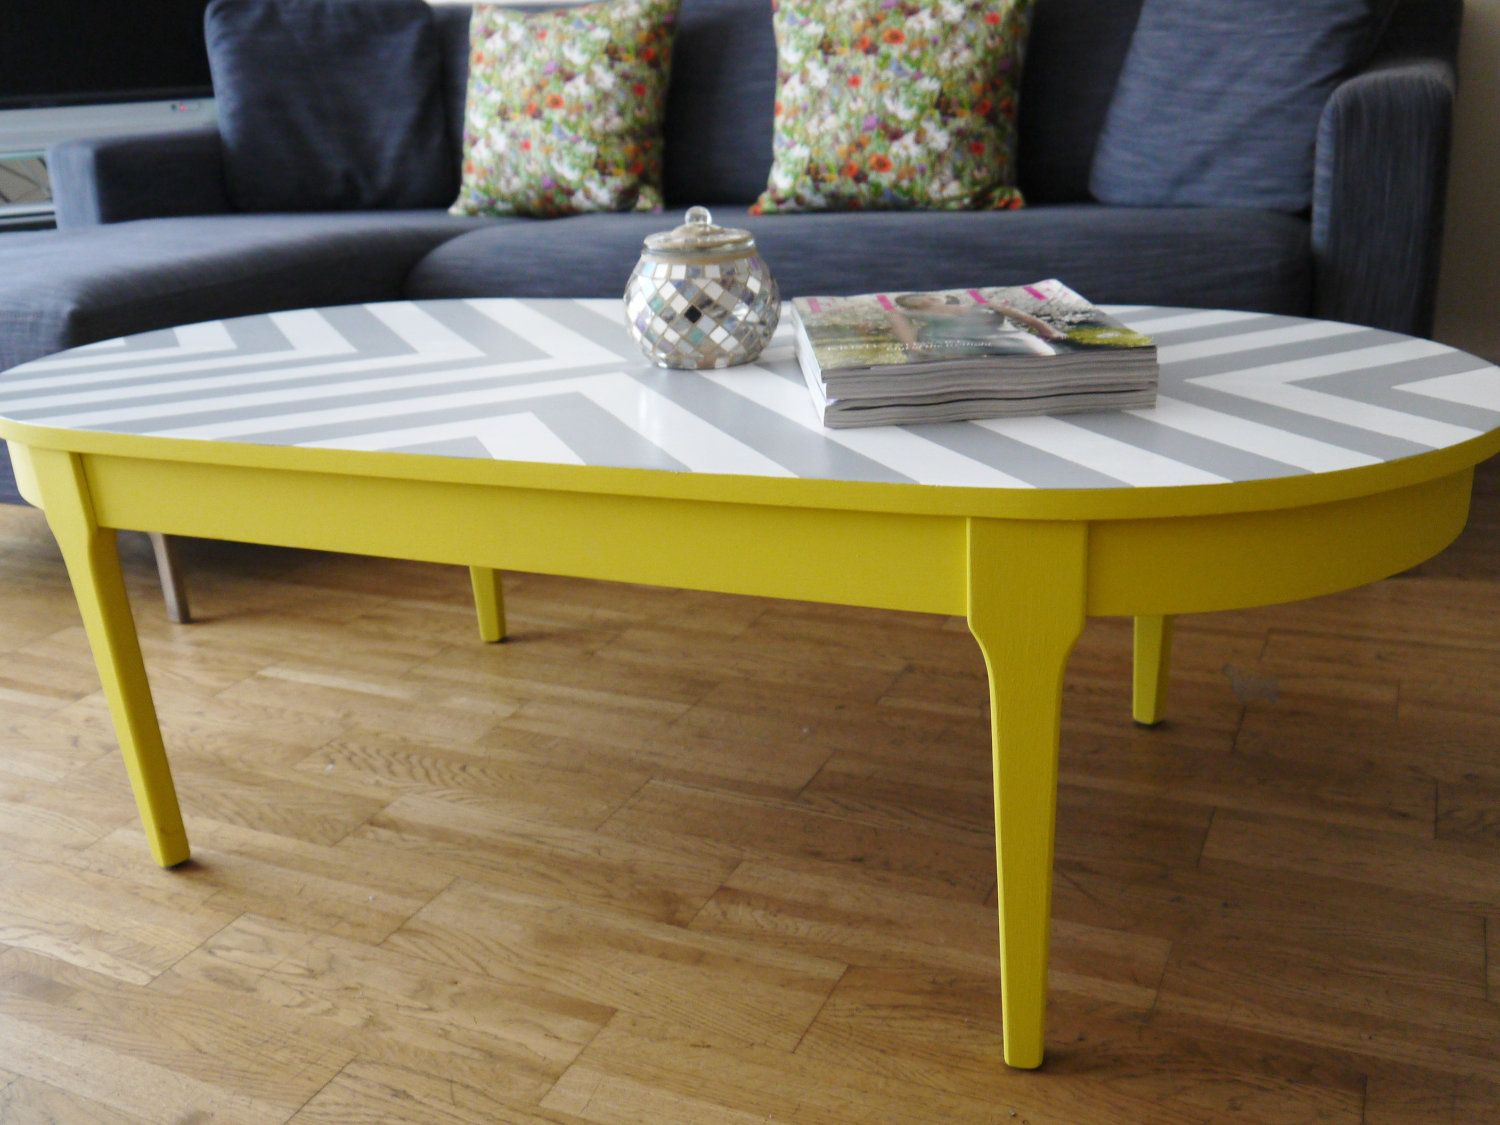 chevron painted furniture. Bespoke Hand Painted Upcycled Geometric Chevron Oval Wood Coffee Table Furniture